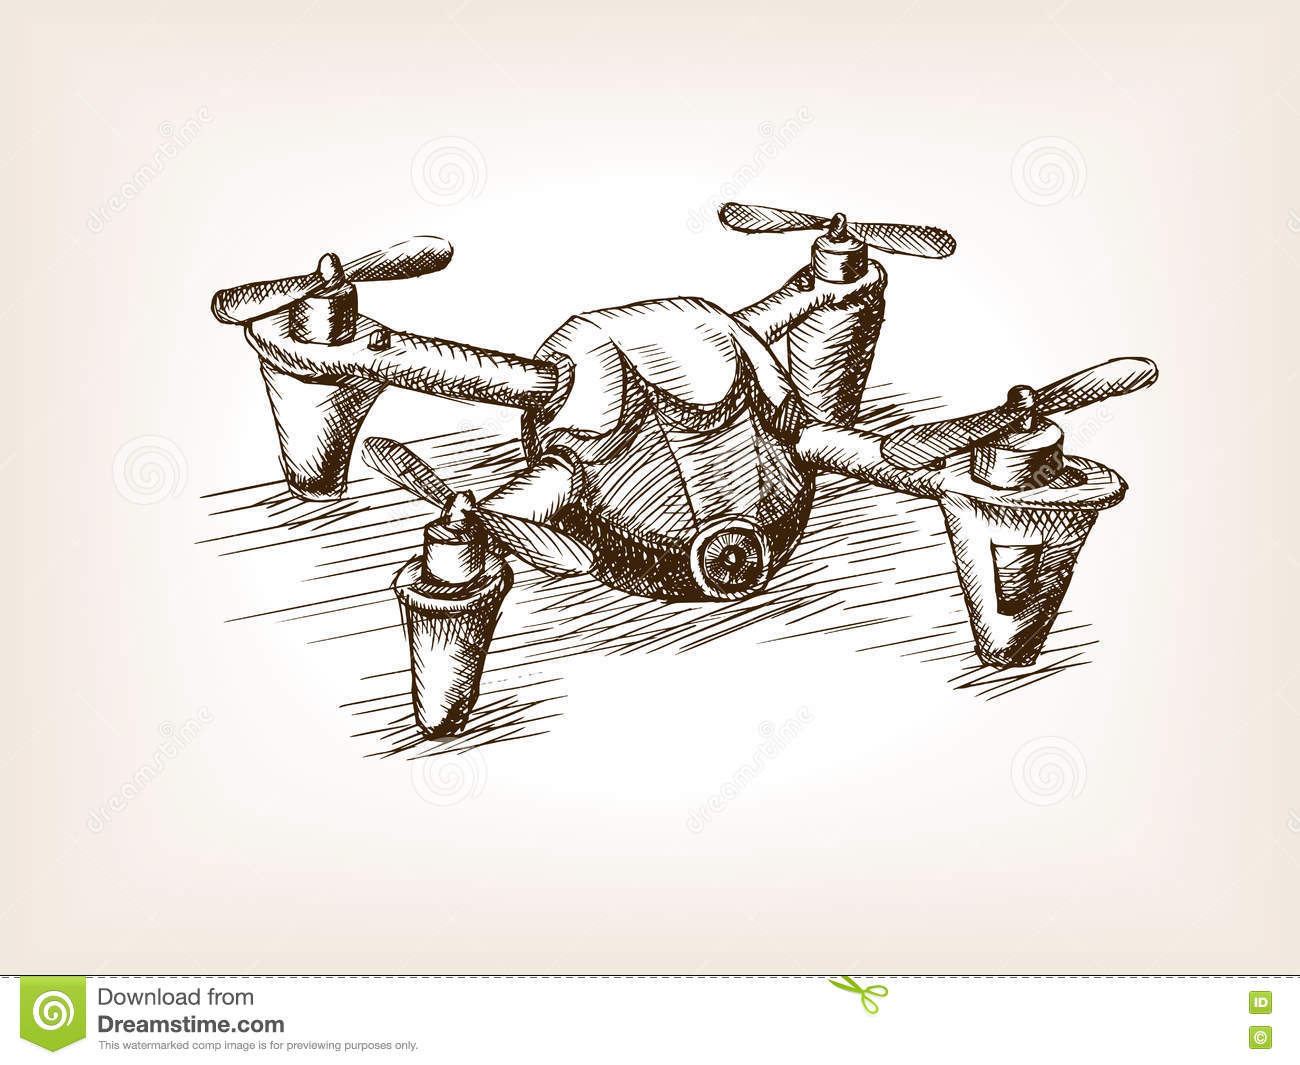 Quadrocopter Drone Sketch Vector Illustration